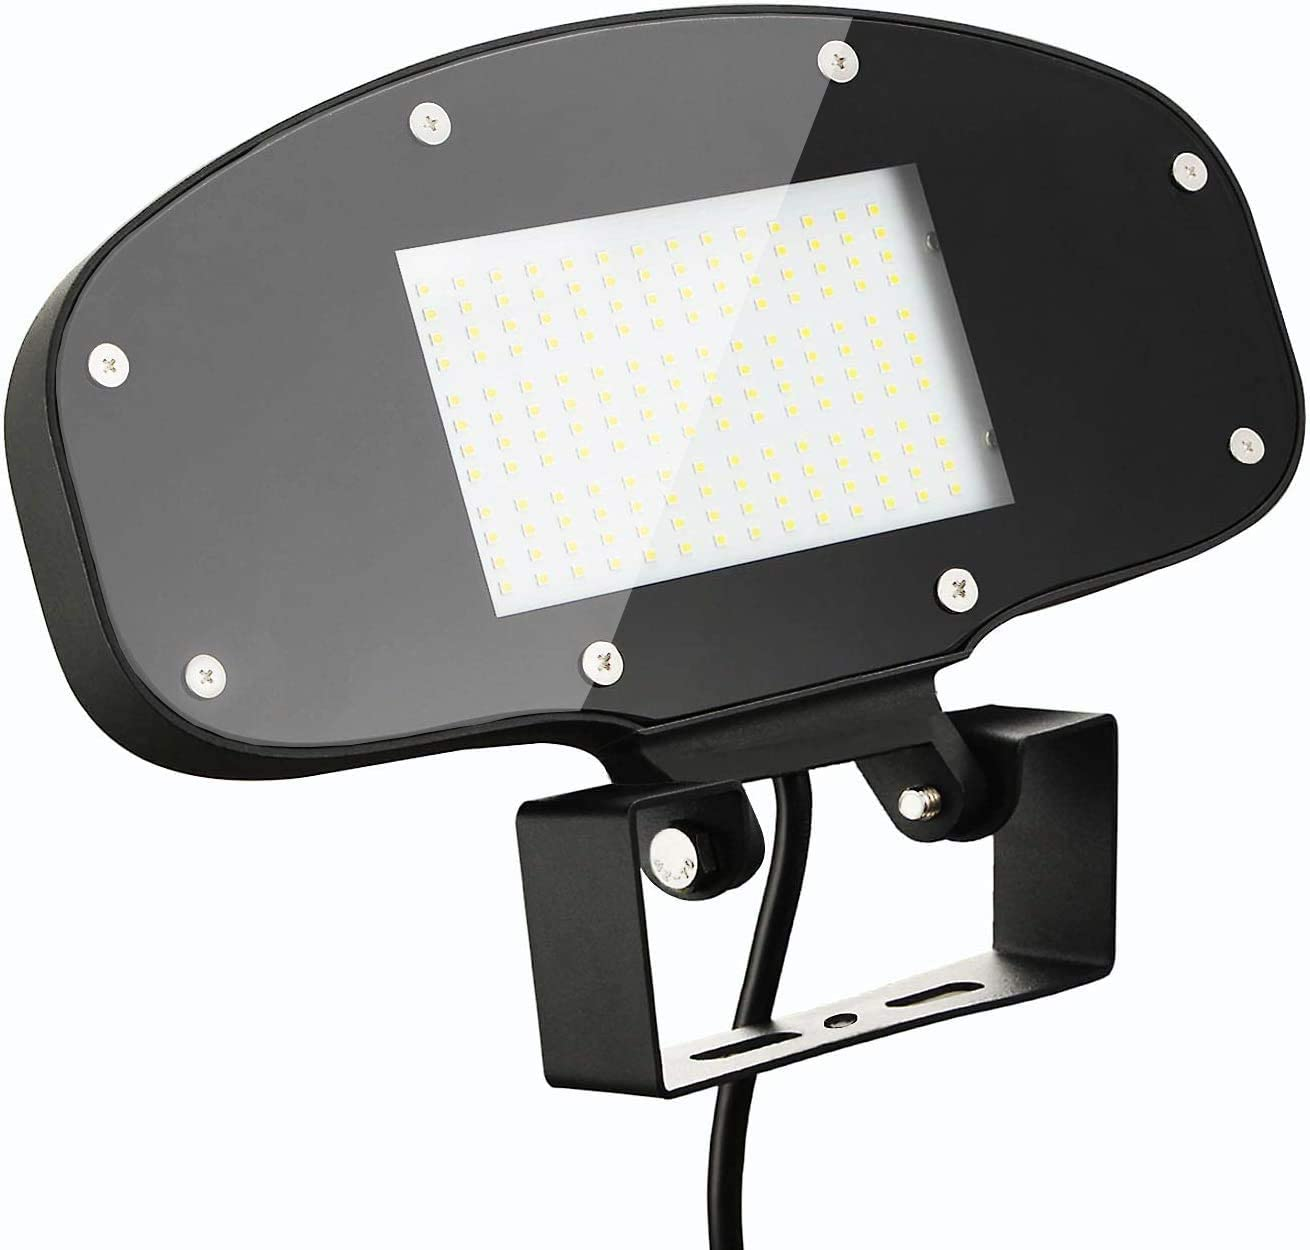 80W LED Flood Light 9000LM 5000K 180 Adjustable led flood lights knuckle mount IP65